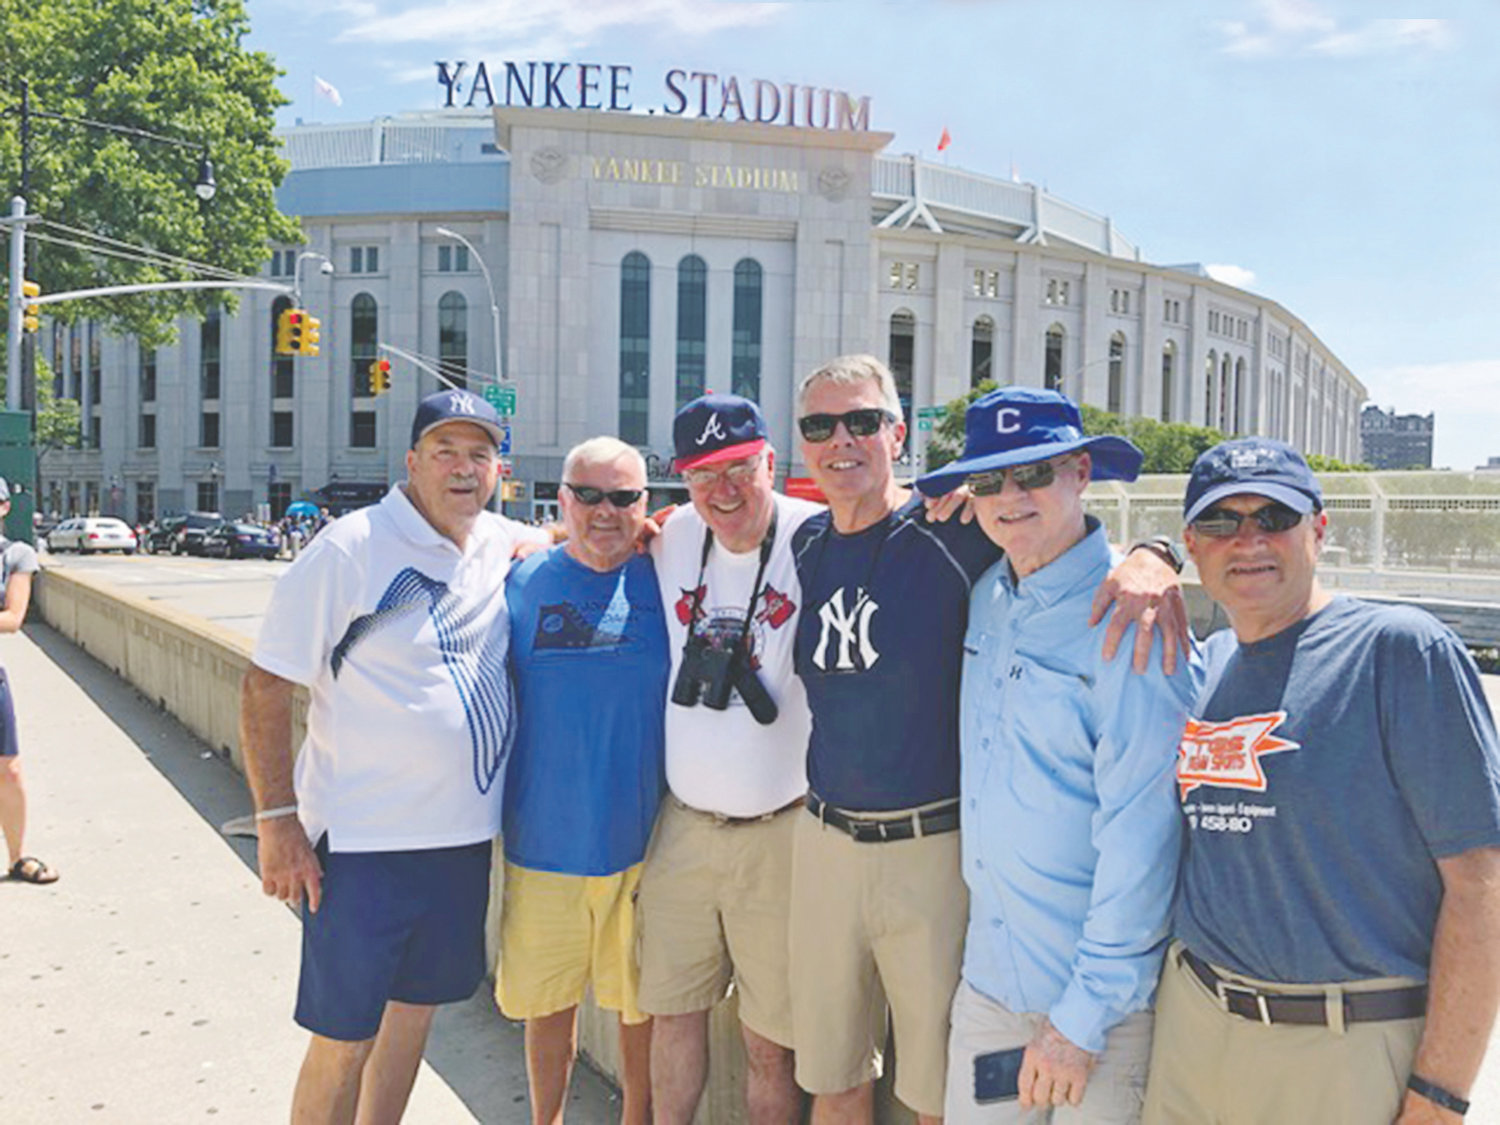 FORMER LOCAL coaches Dave Altopp, John Dixon, David Chaffin, Charlie Cogdill, Donnie Yates and Tim Rader are in the midst of their seventh annual trip to Major League Baseball stadiums.